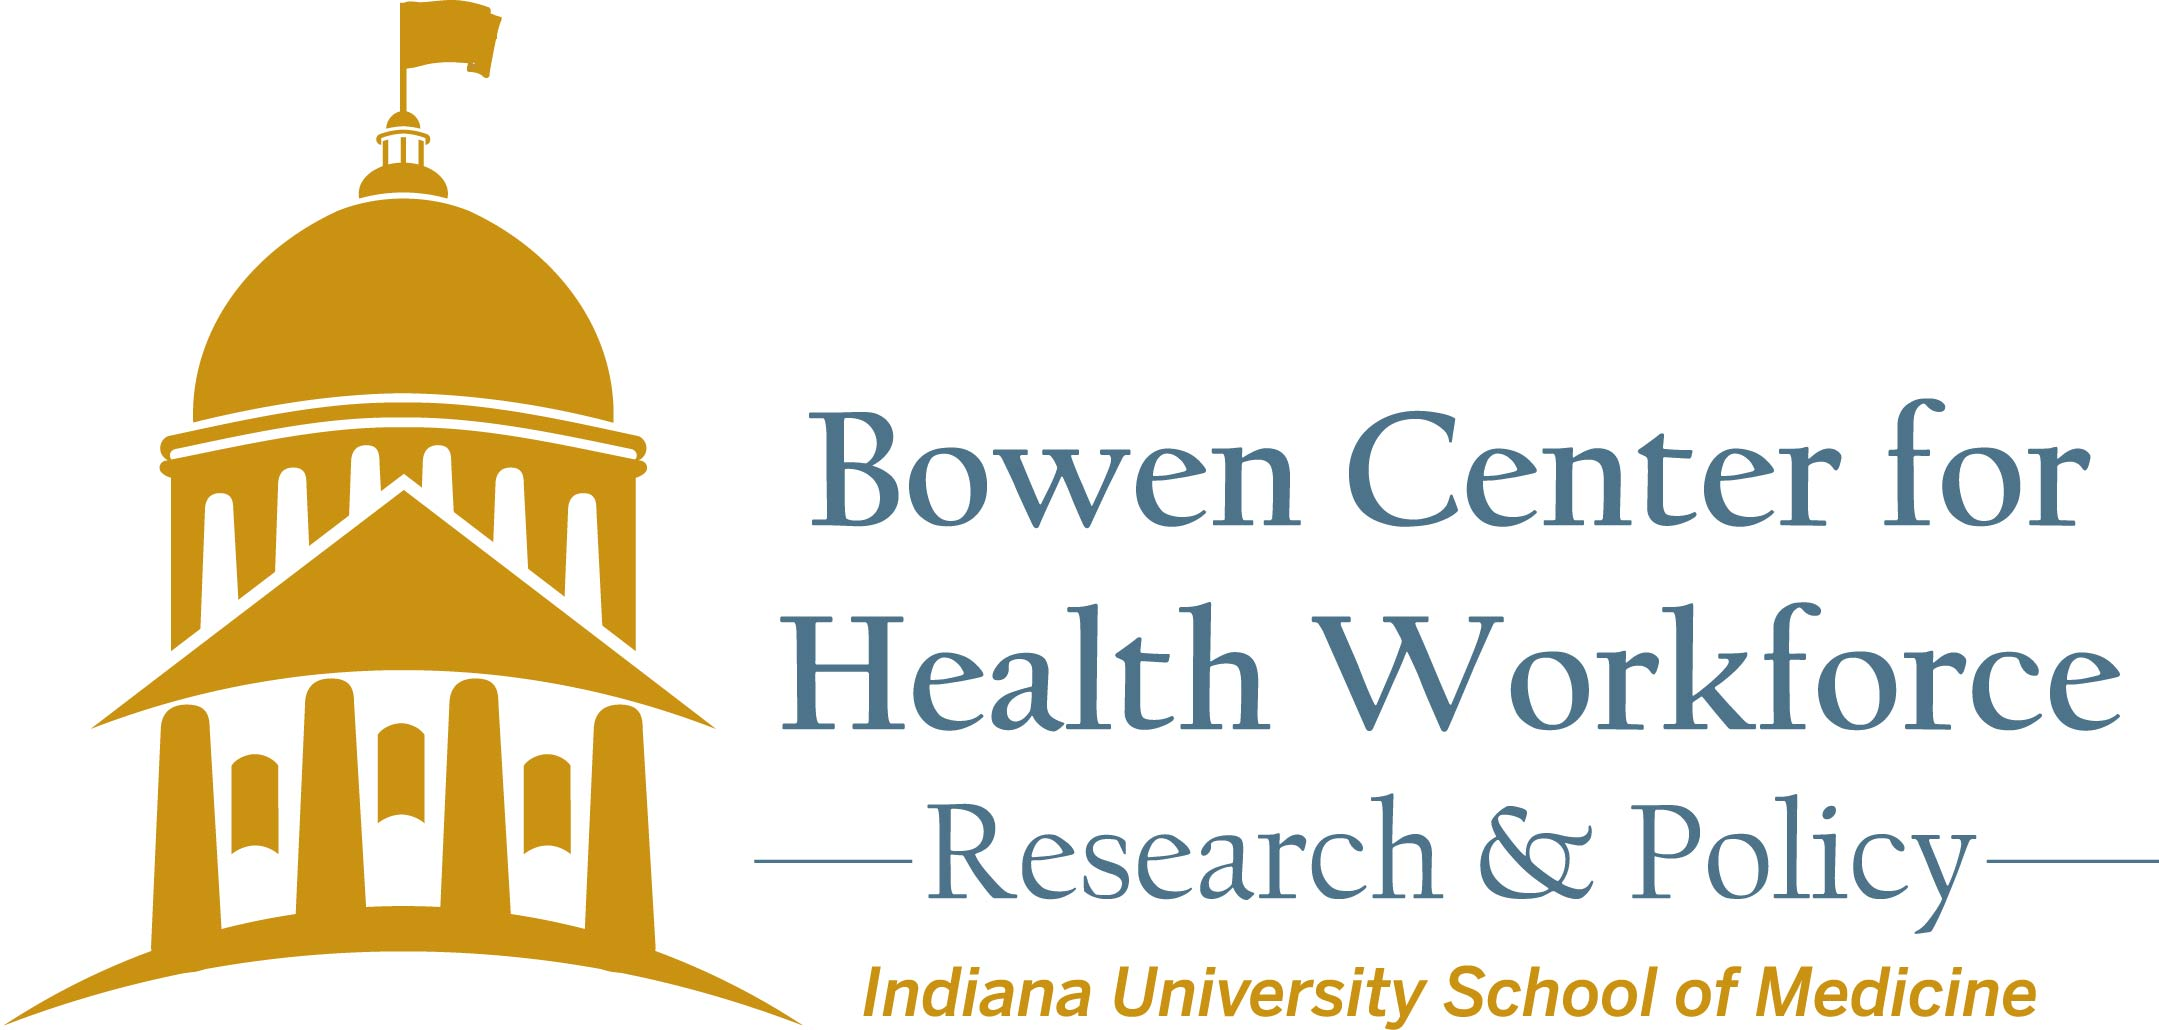 Bowen Center for Health Workforce Research and Policy logo